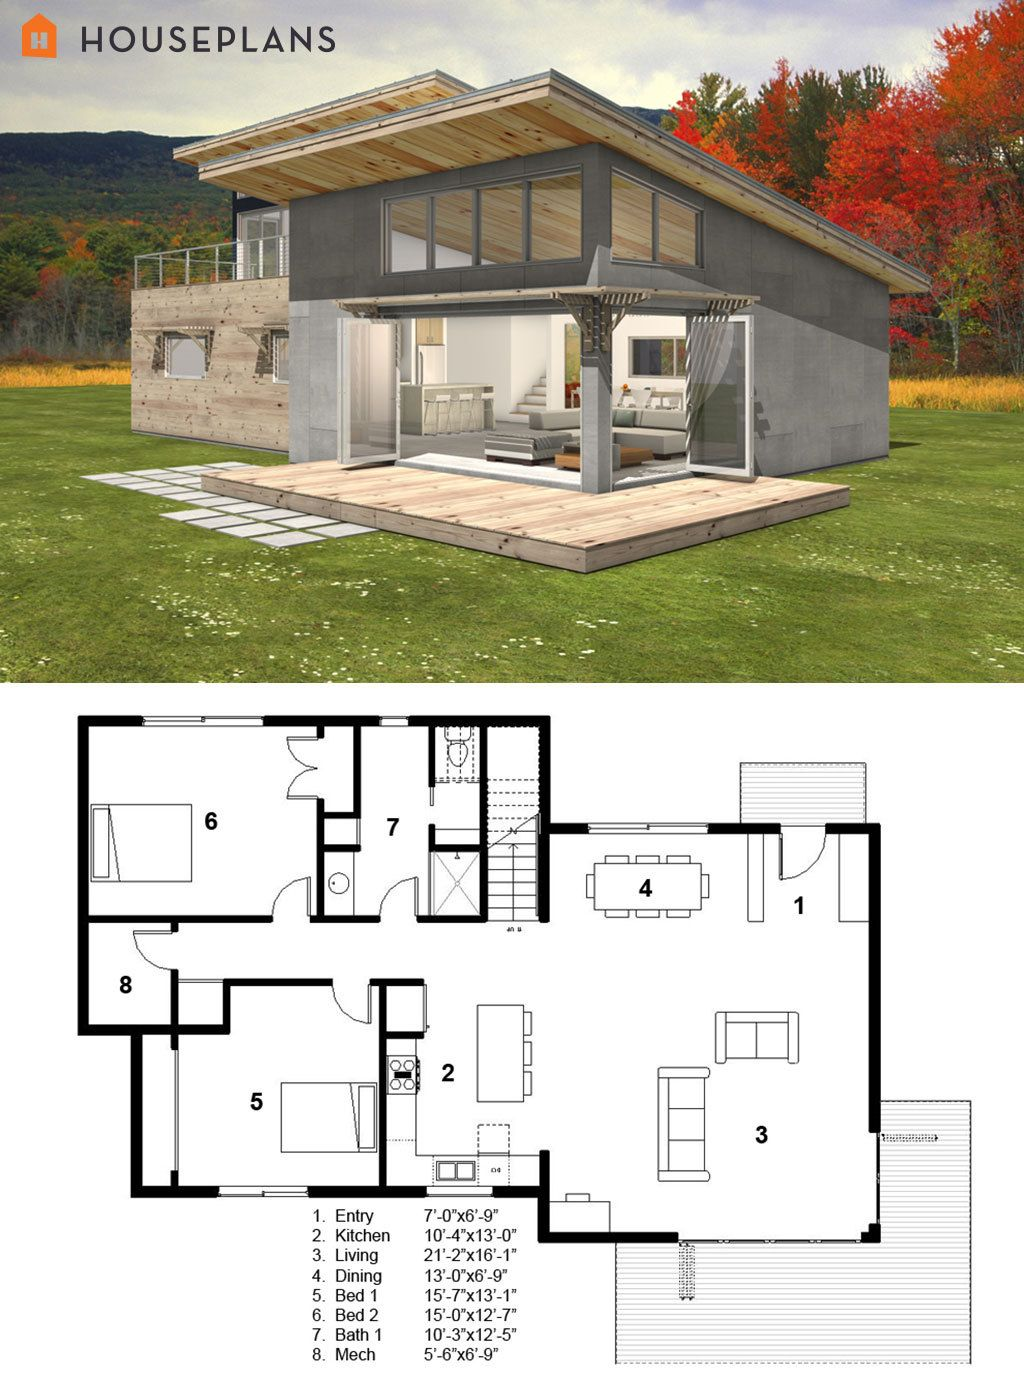 Modern style house plan 3 beds baths 2115 sq ft Modern house 1 floor